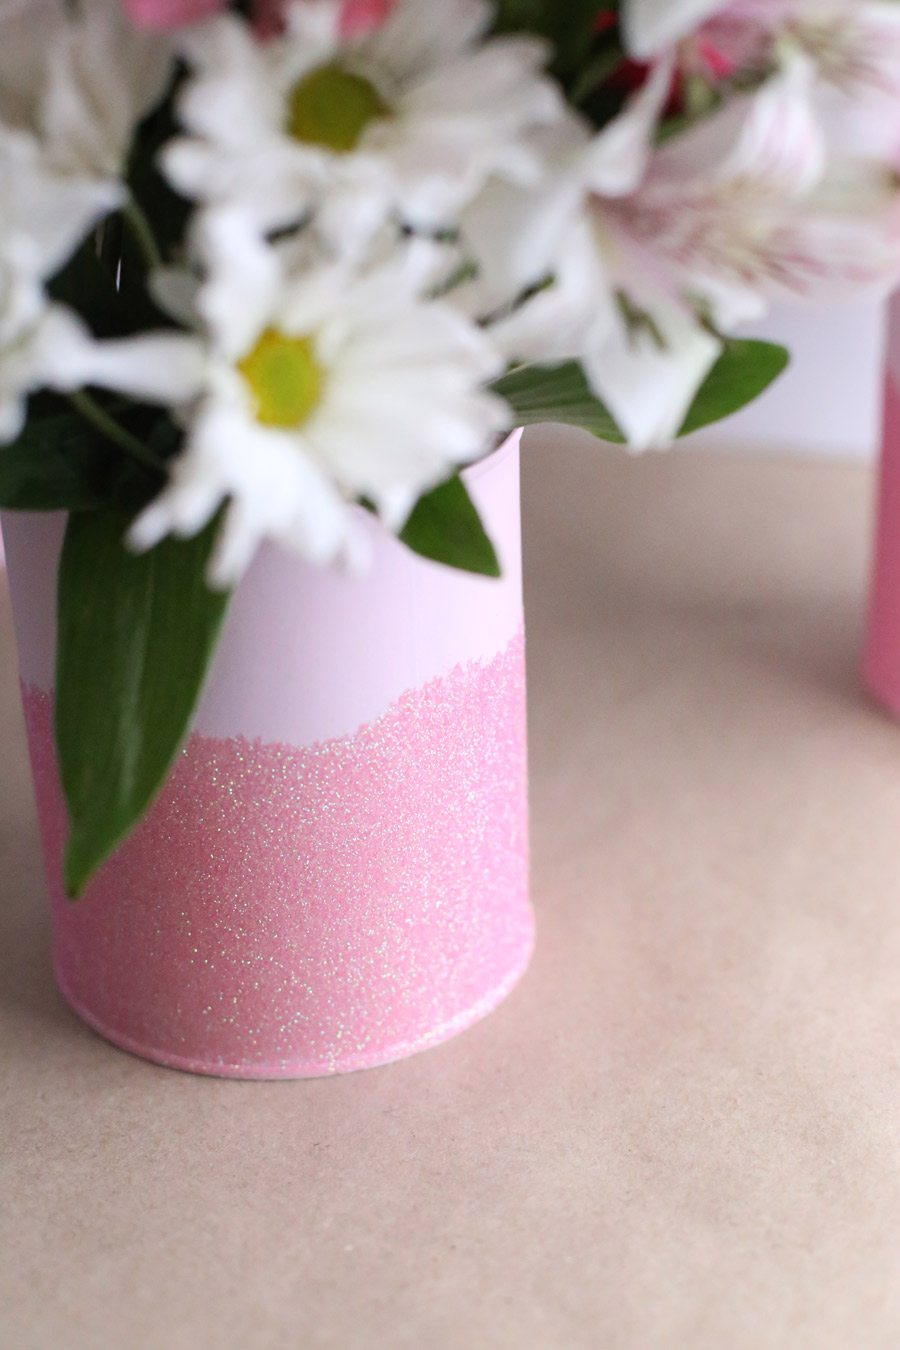 Diy mini paint can glitter vases the sweetest occasion diy mini paint can glitter vases by cydconverse reviewsmspy